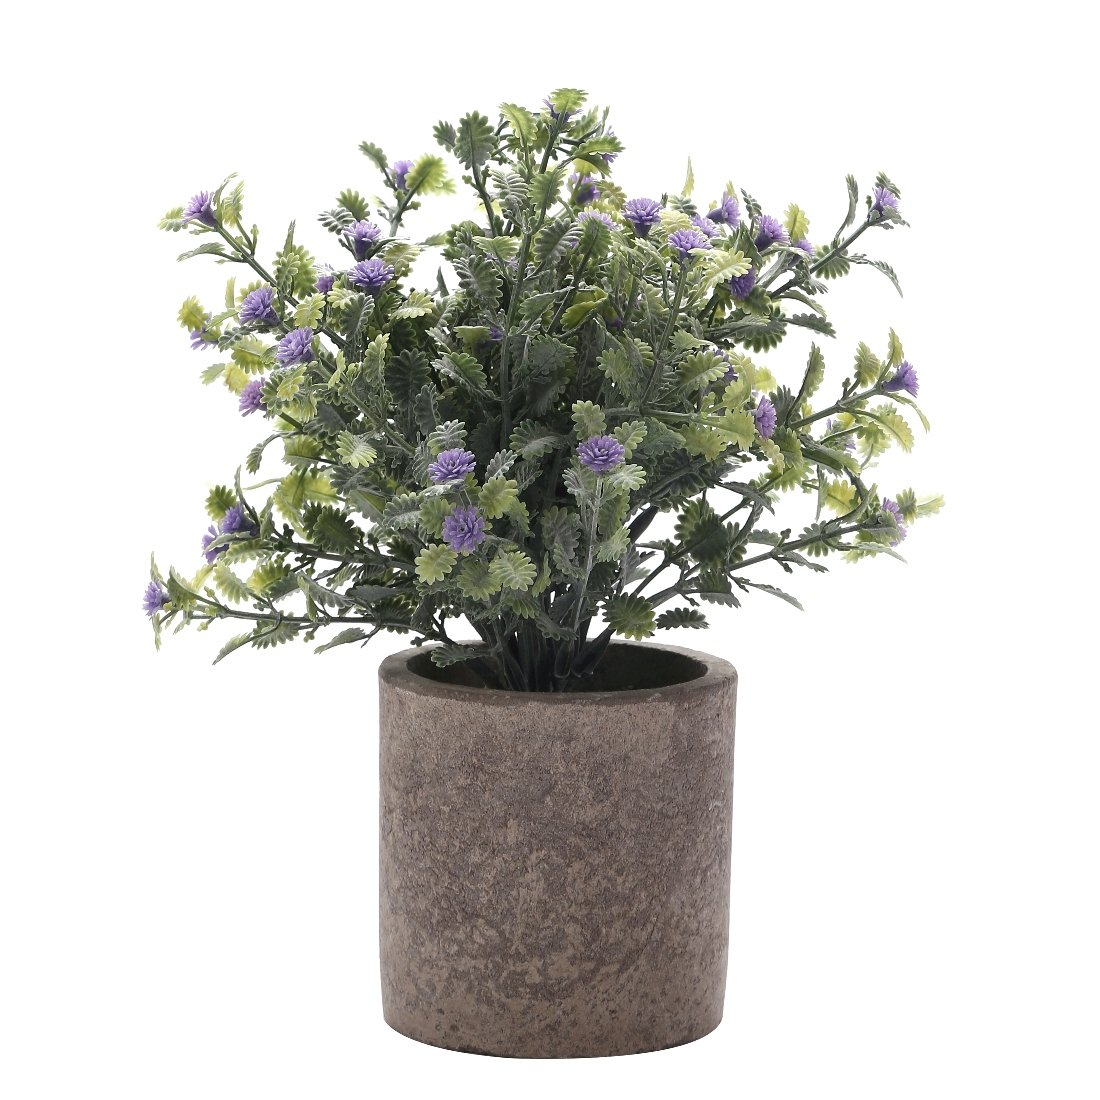 HC STAR Artificial Plant Potted Mini Fake Plant Decorative Lifelike Flower Green Plants - 1102 (Round Pot, Purple)¡­